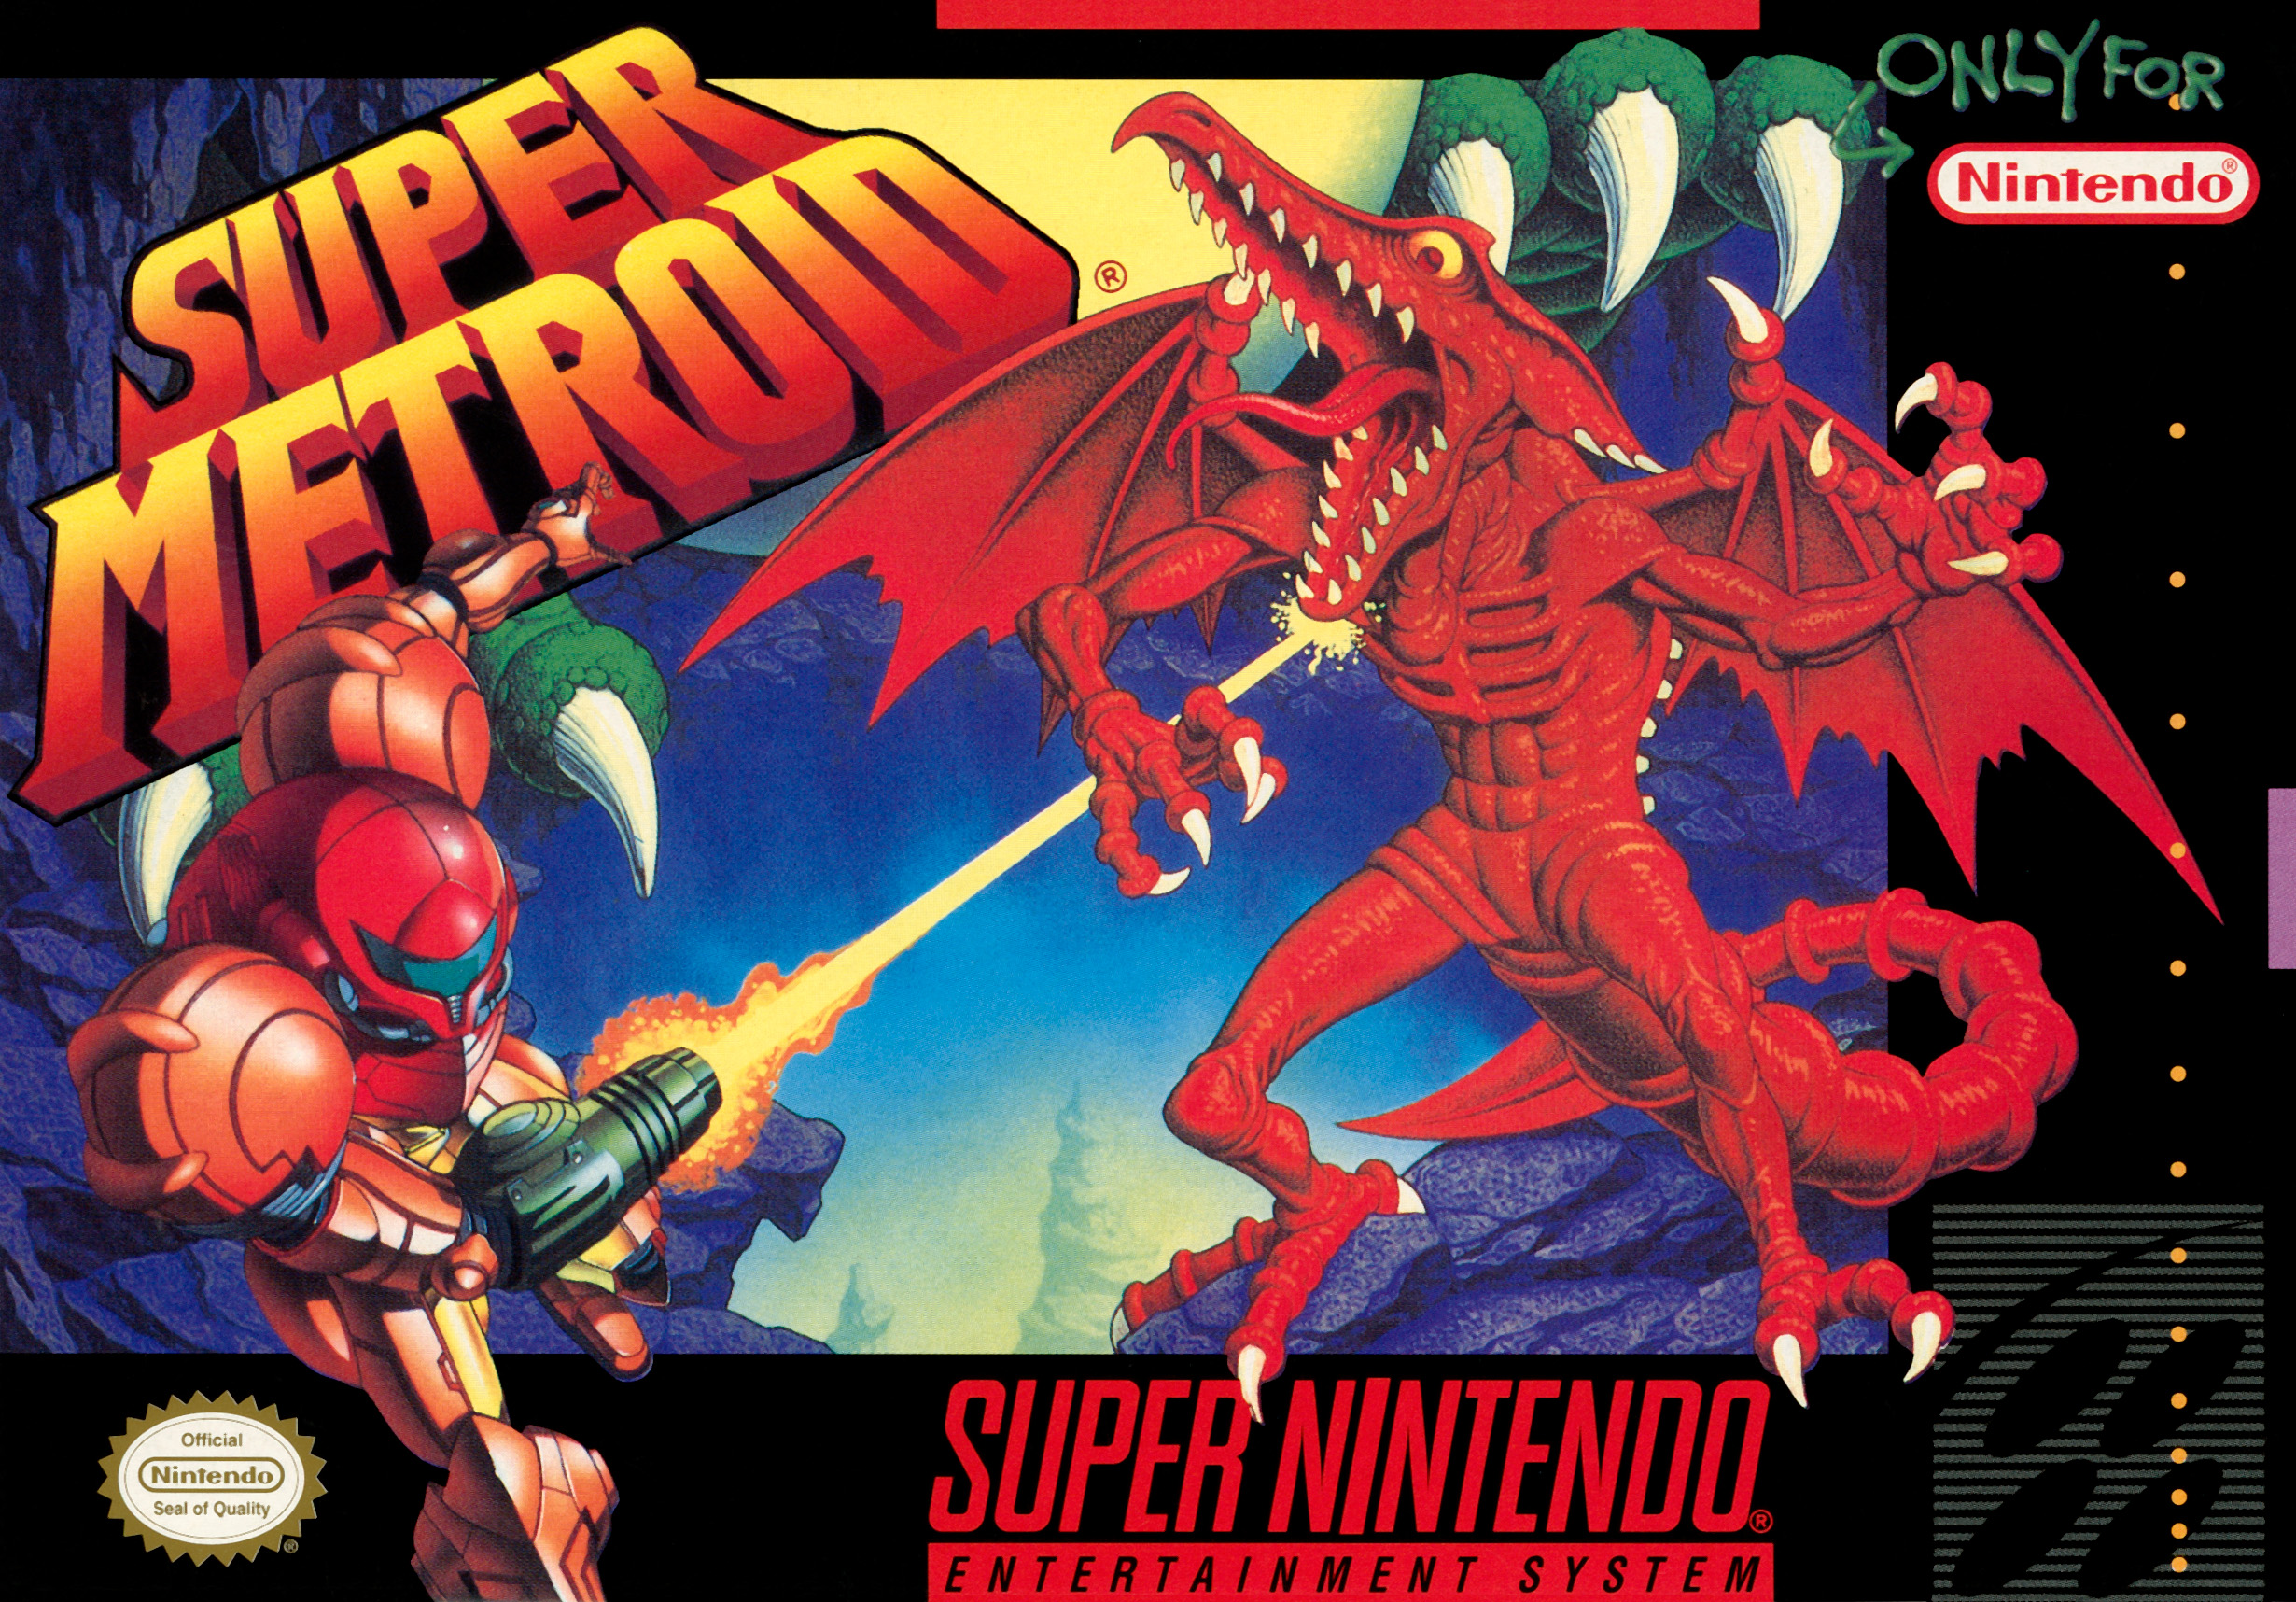 File:Super Metroid box.jpg